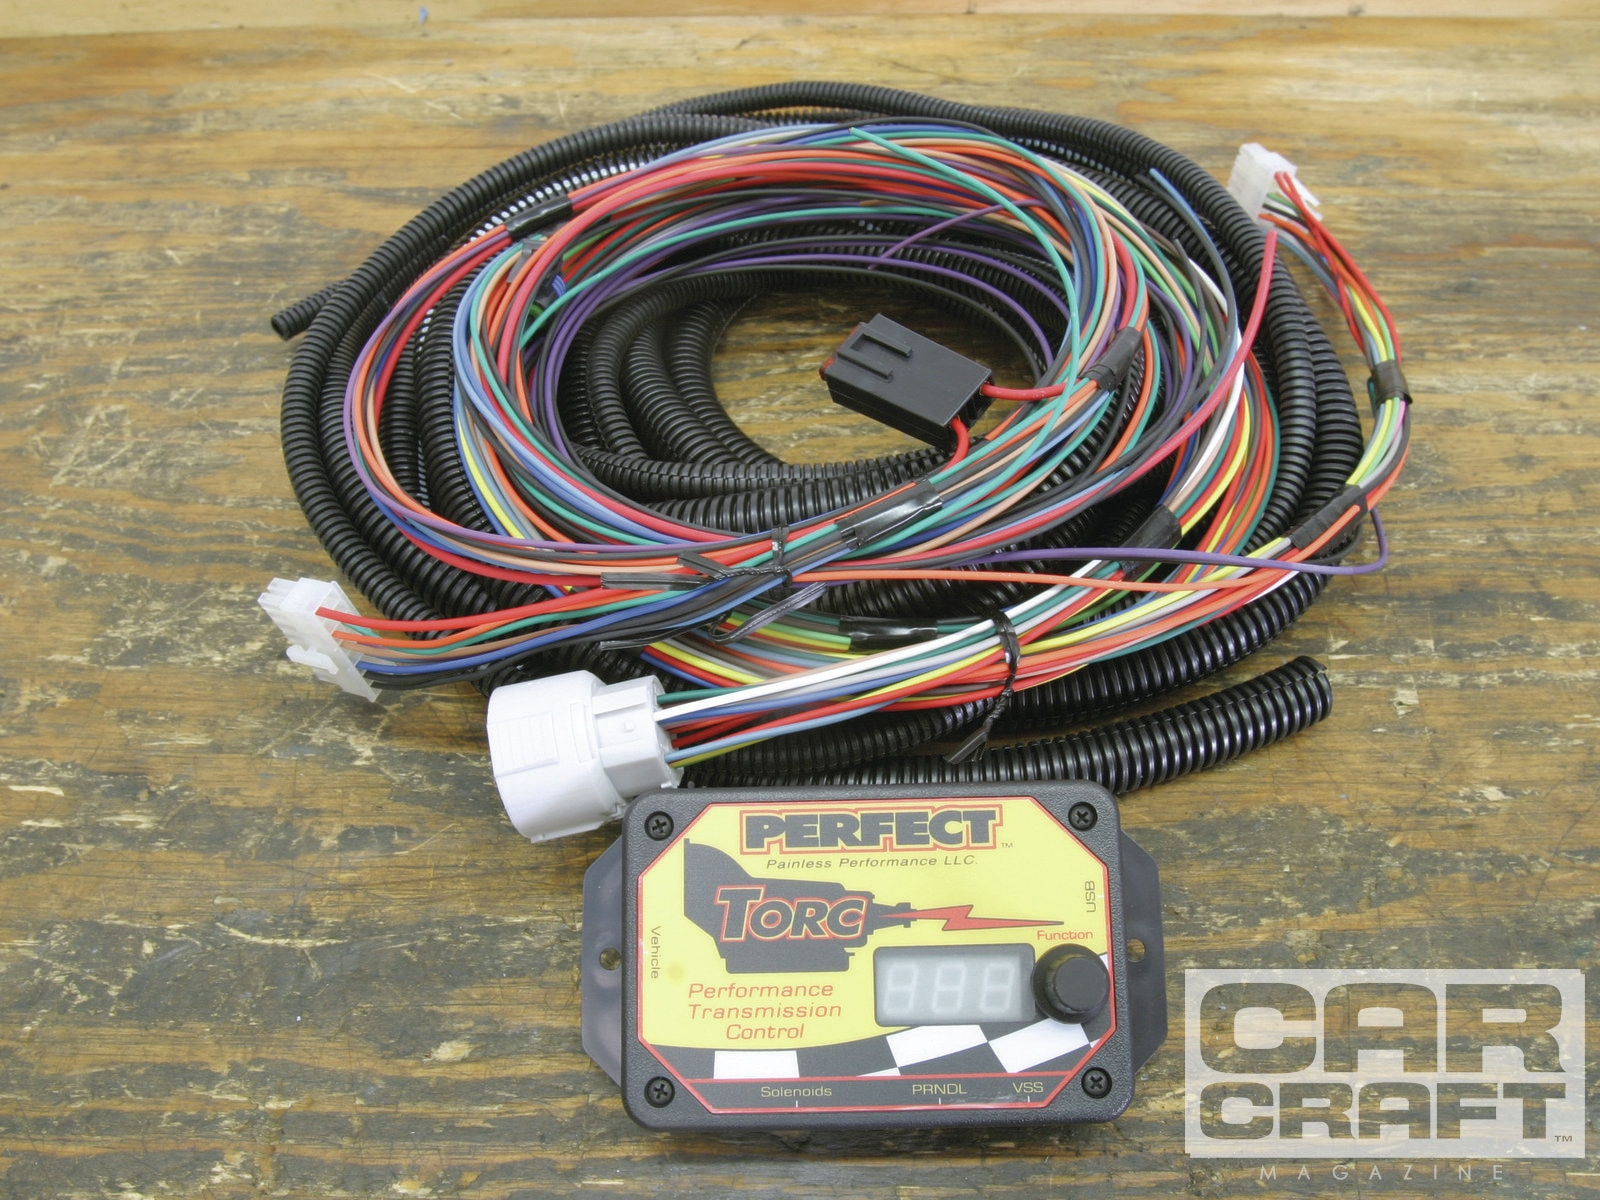 hight resolution of testing the latest transmission controllers hot rod network 323032 22